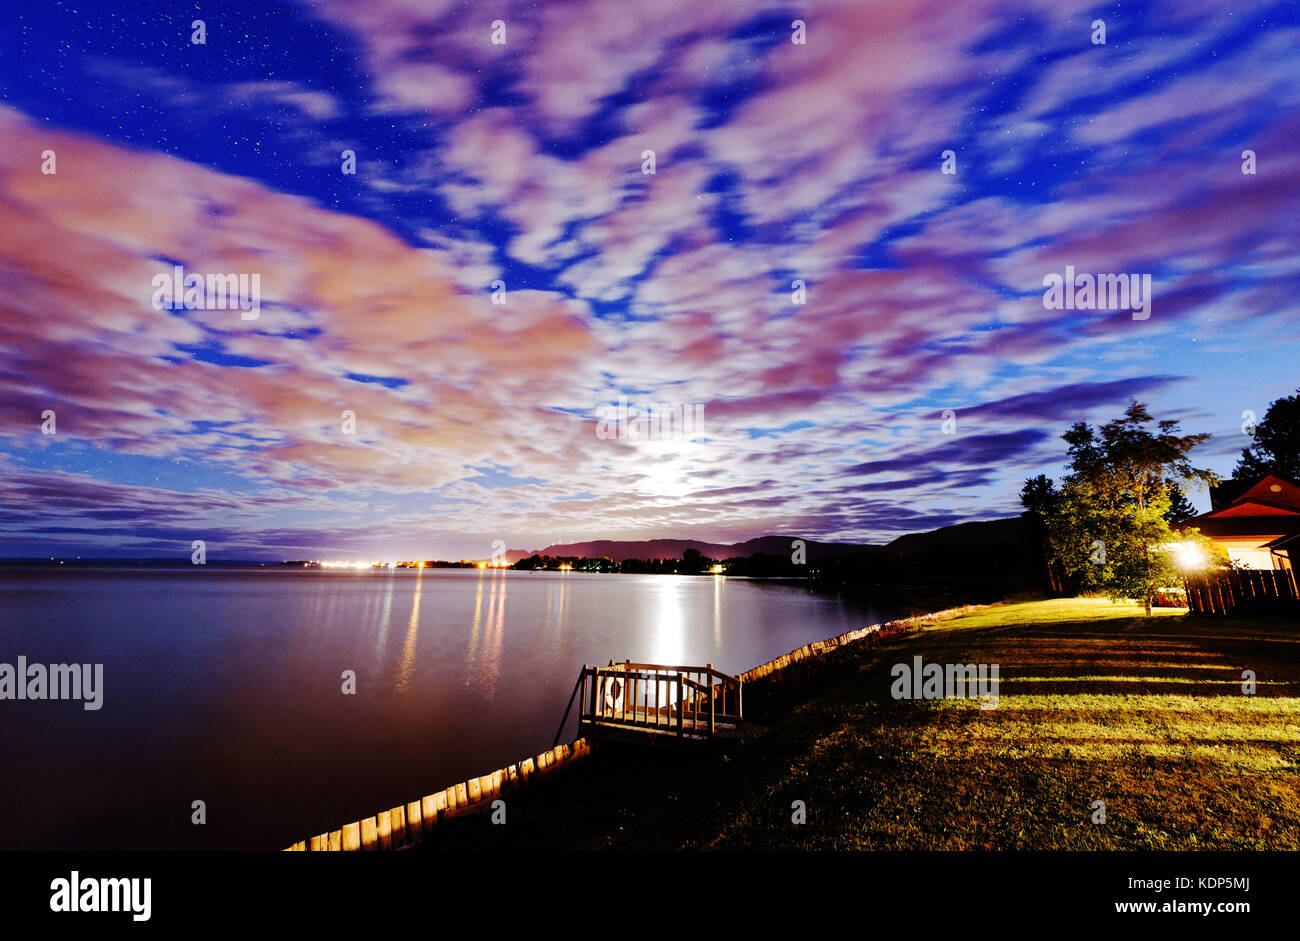 A superb night sky over Maria in Baie des Chaleurs in Gaspesie, Quebec, Canada - Stock Image